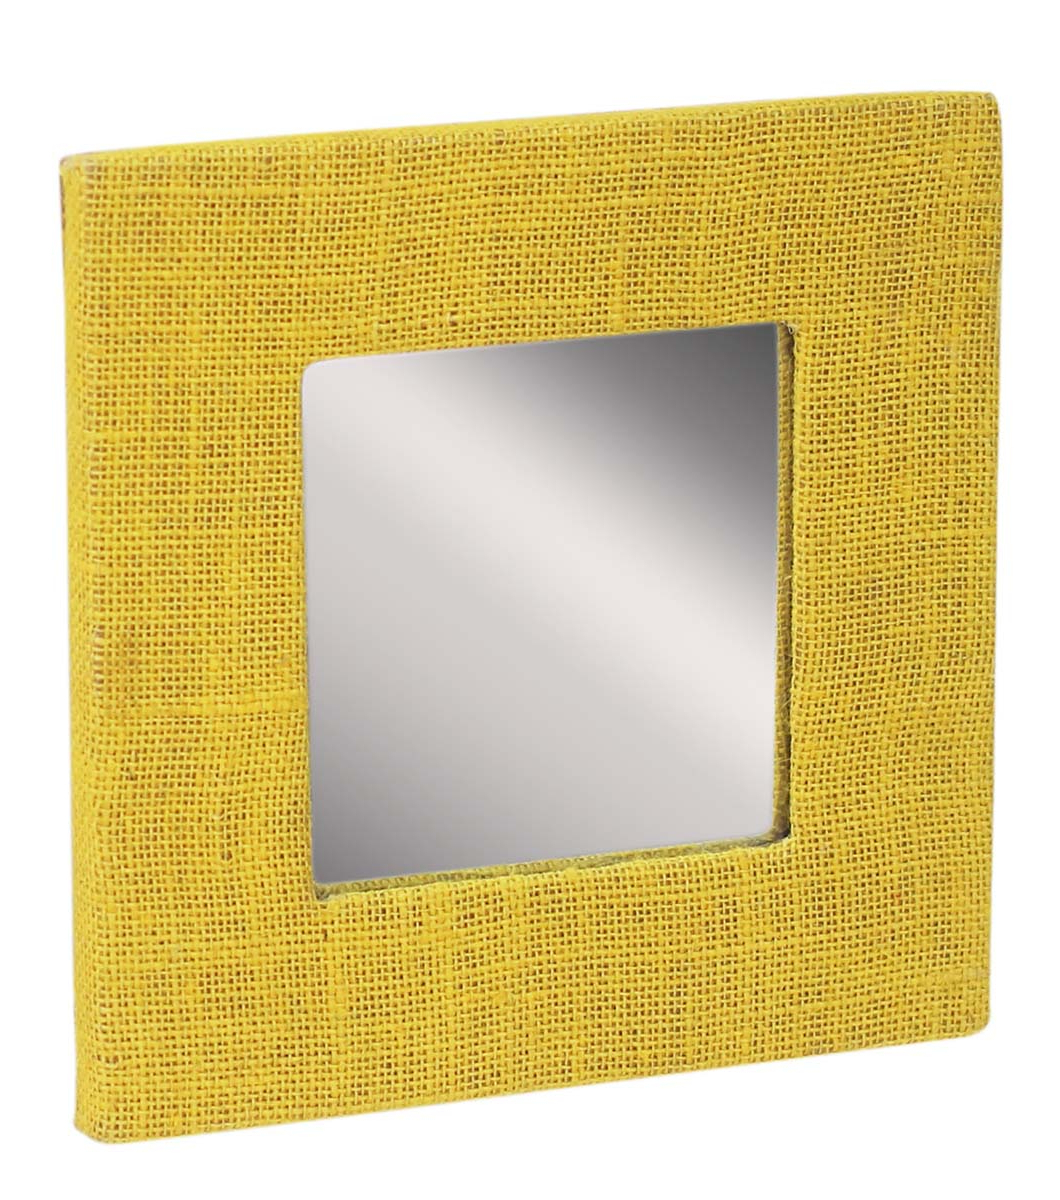 Well Known Yellow Wall Mirrors For Wholesale Square Shaped Wall Mirror In Bulk – Handmade Decorative (View 10 of 20)